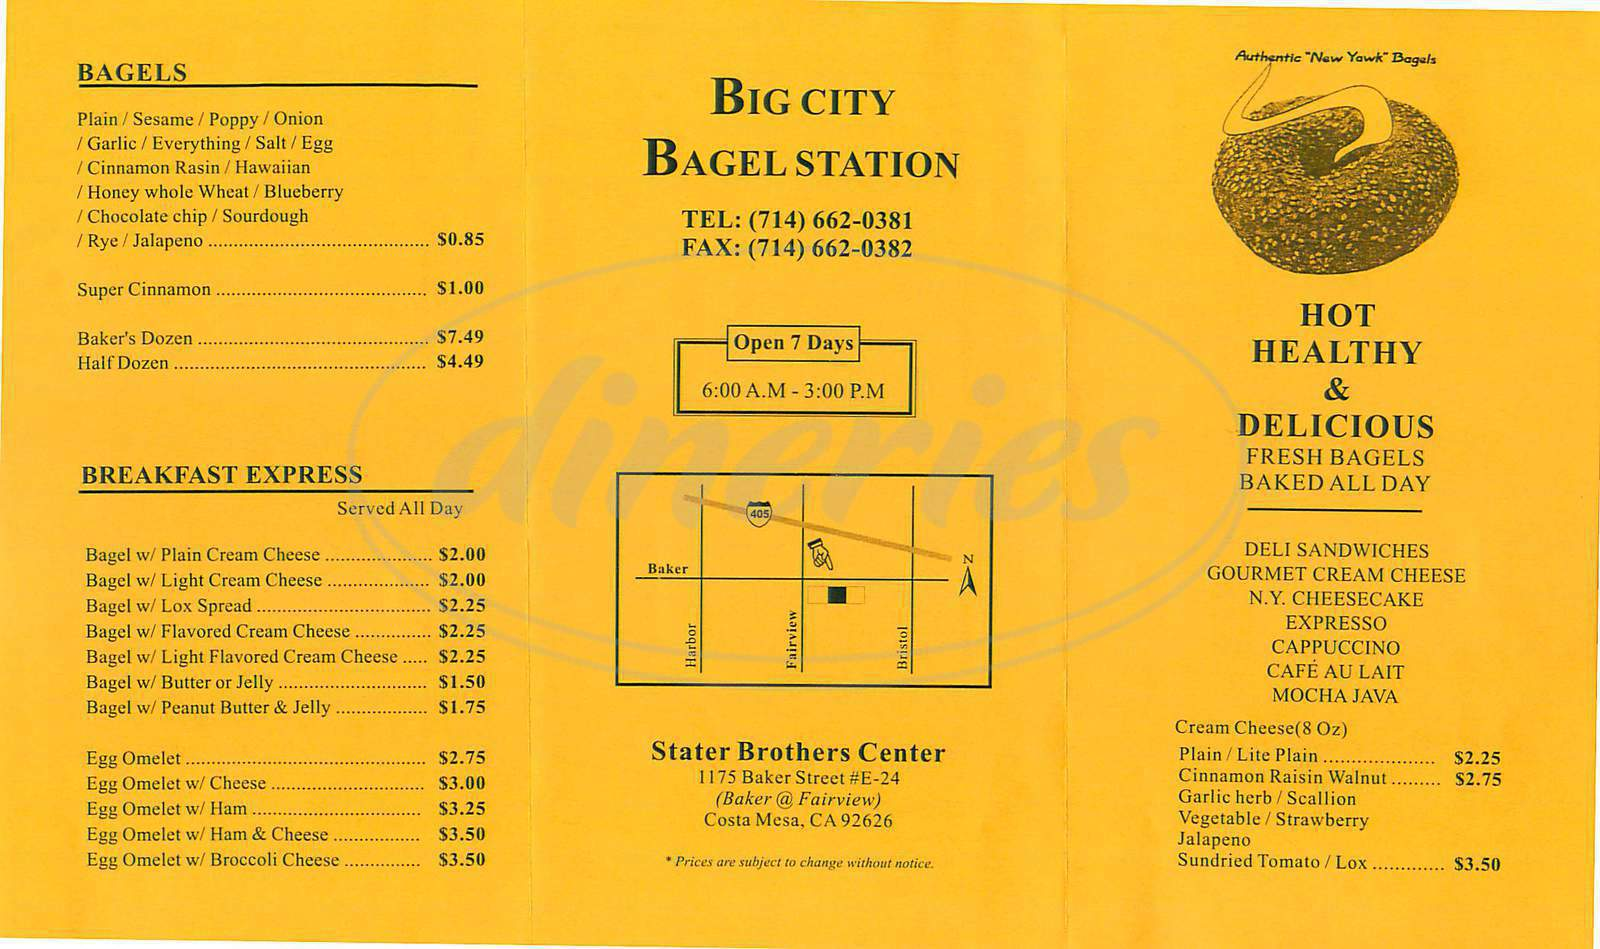 menu for Big City Bagel Station